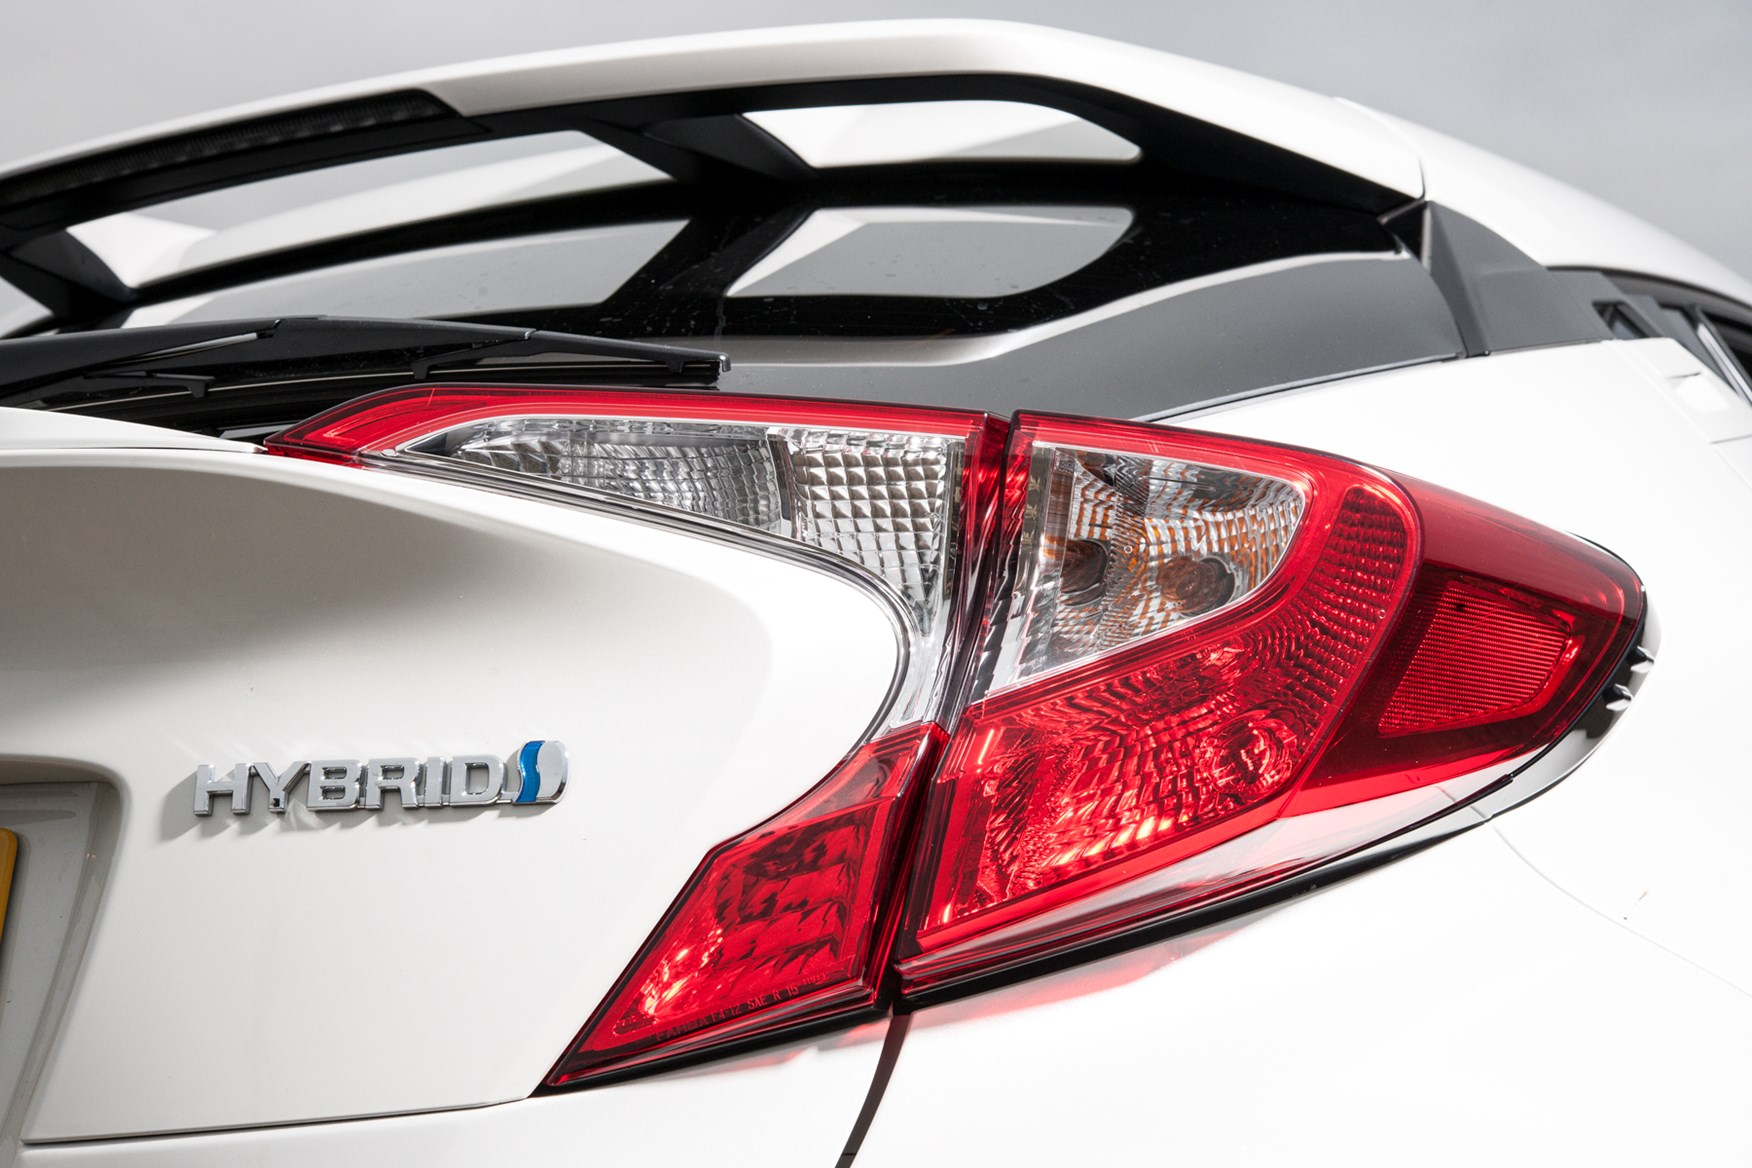 Pearl white paint is a £795 optional extra on the Toyota C-HR